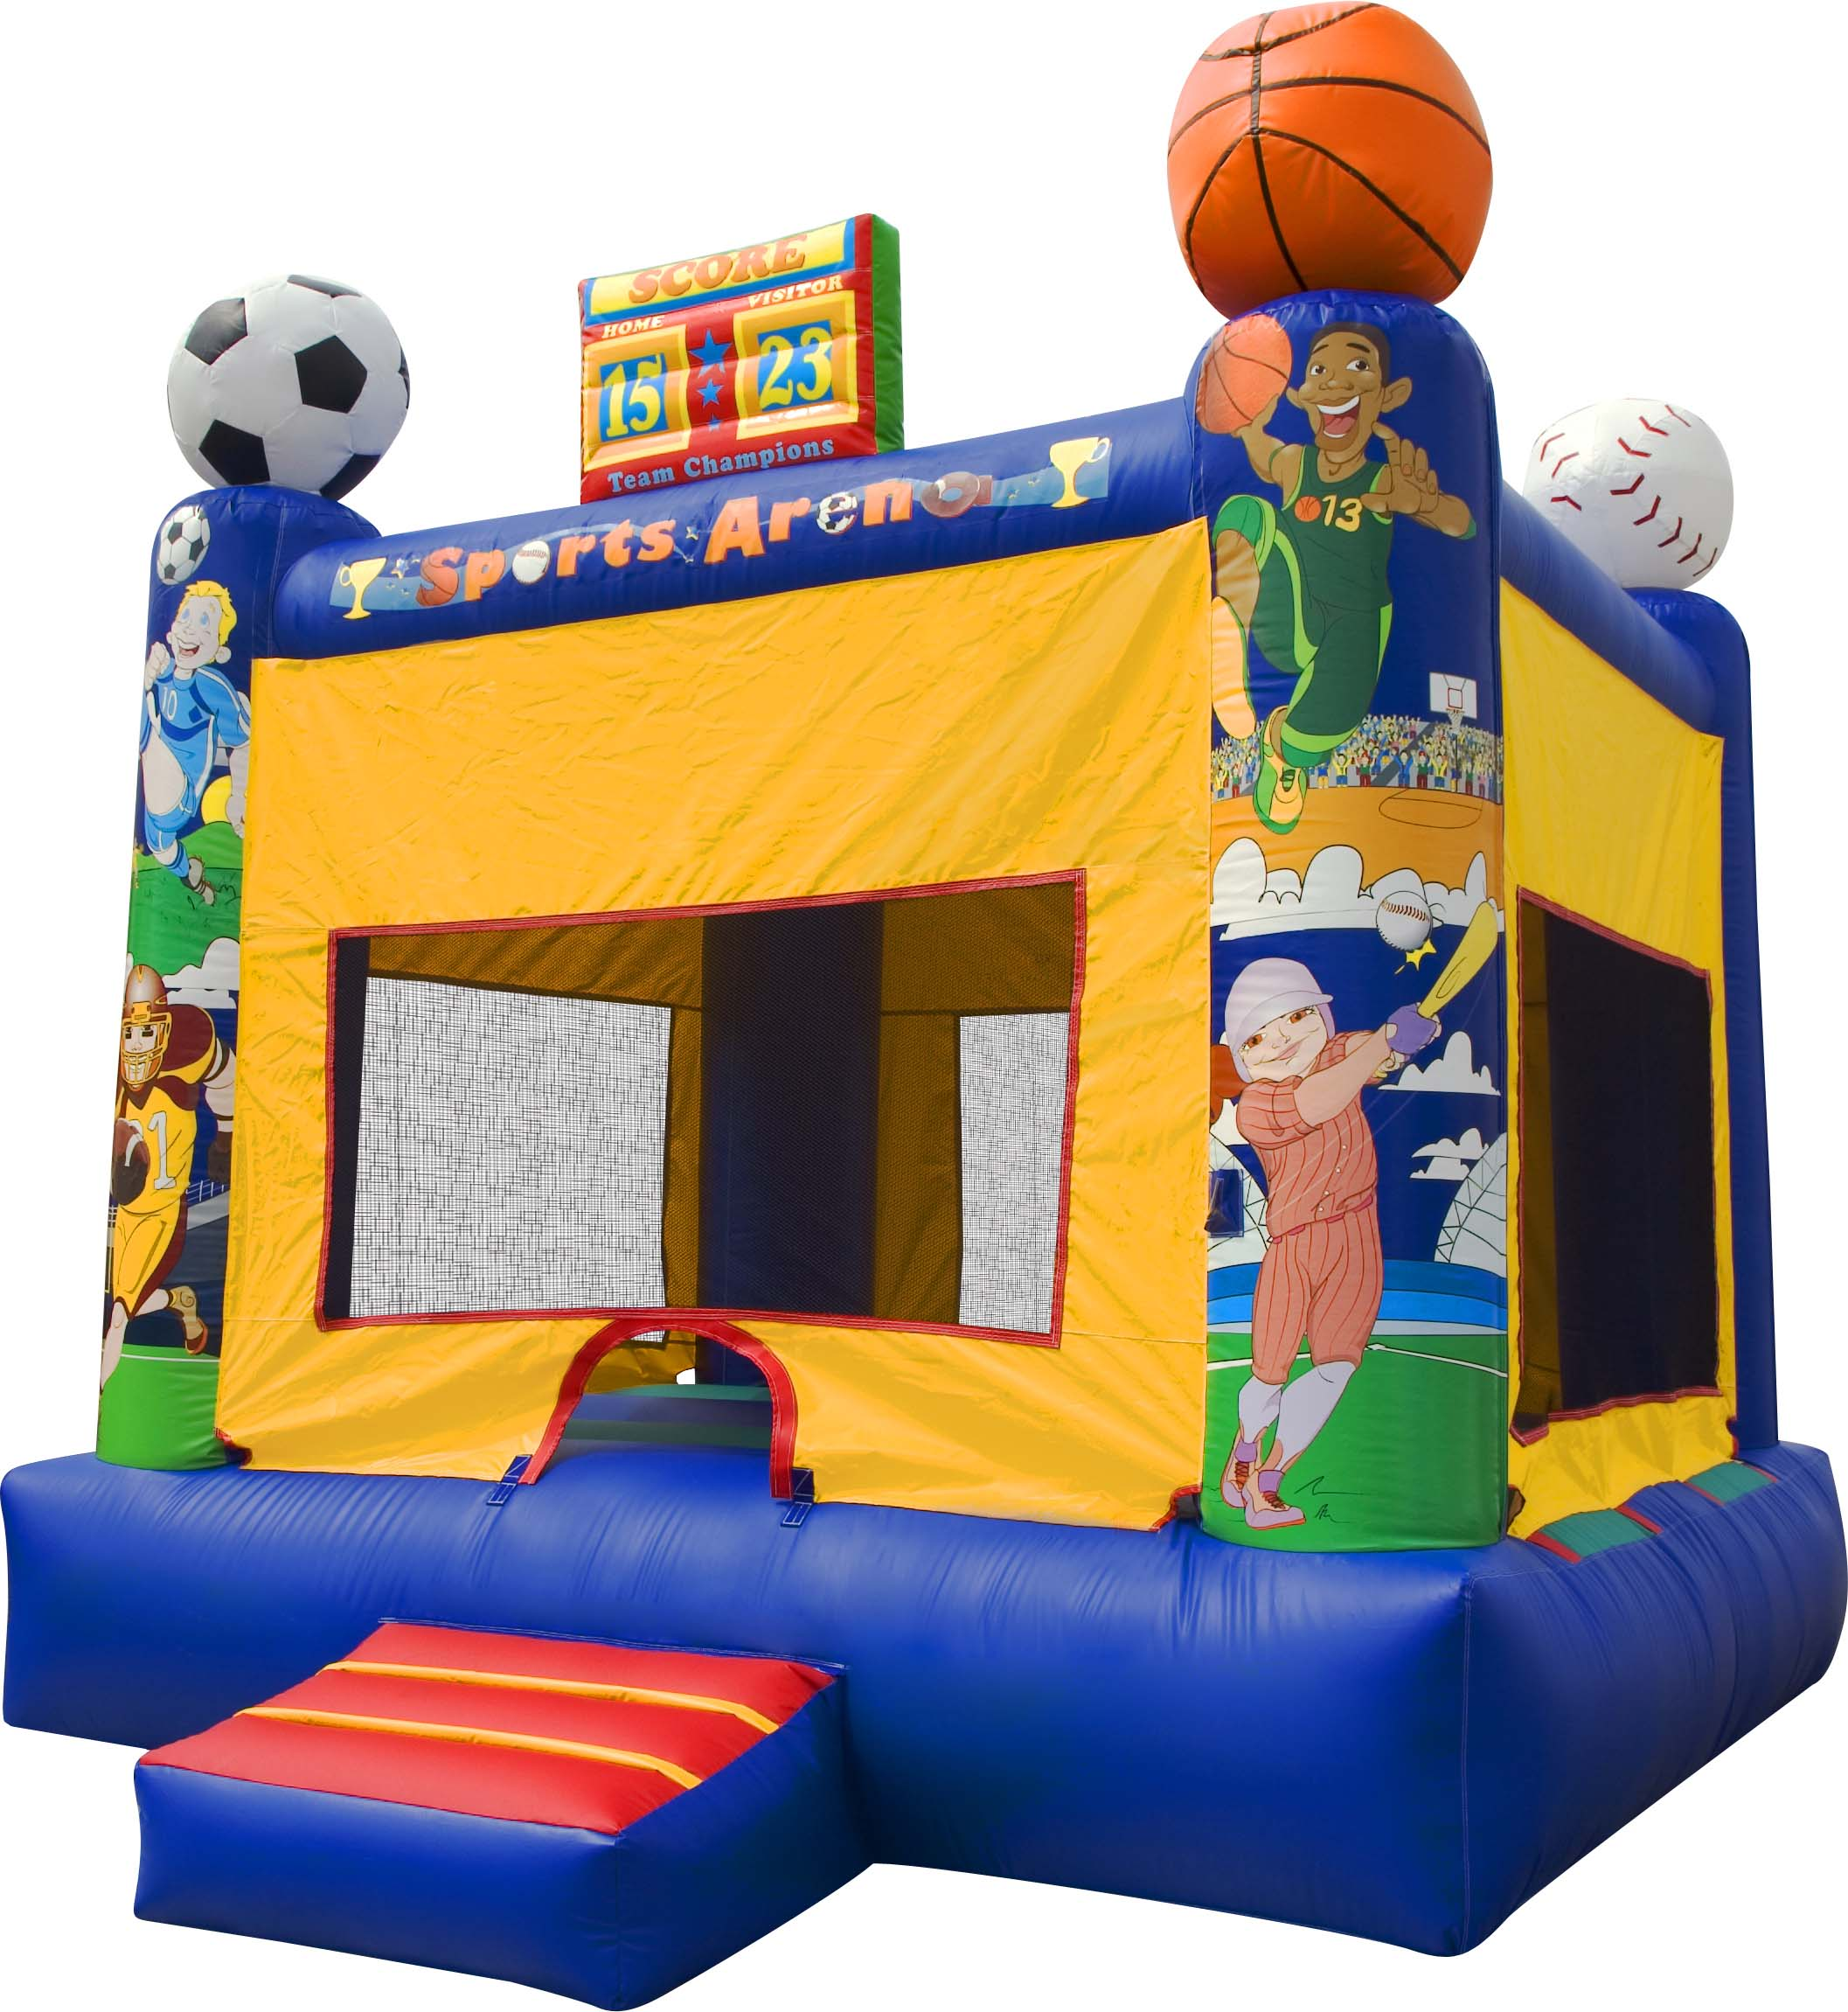 insurance for bounce house business - 28 images - castle bounce ...